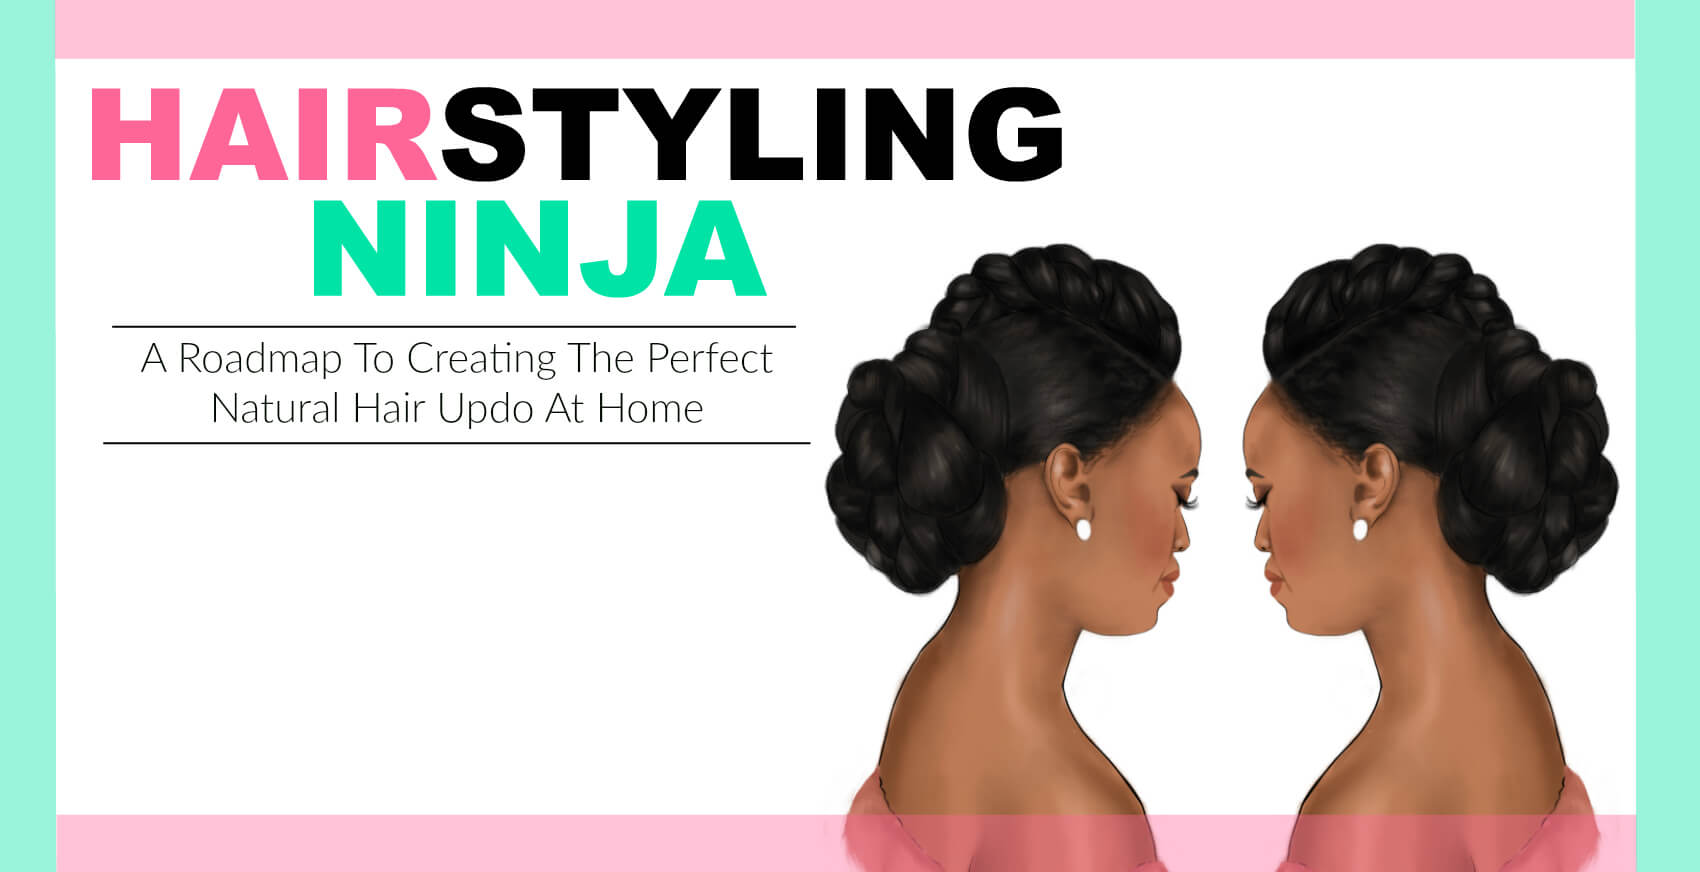 hairstyling ninja for black women -Learn to do natural updo wedding hairstyles for Black women